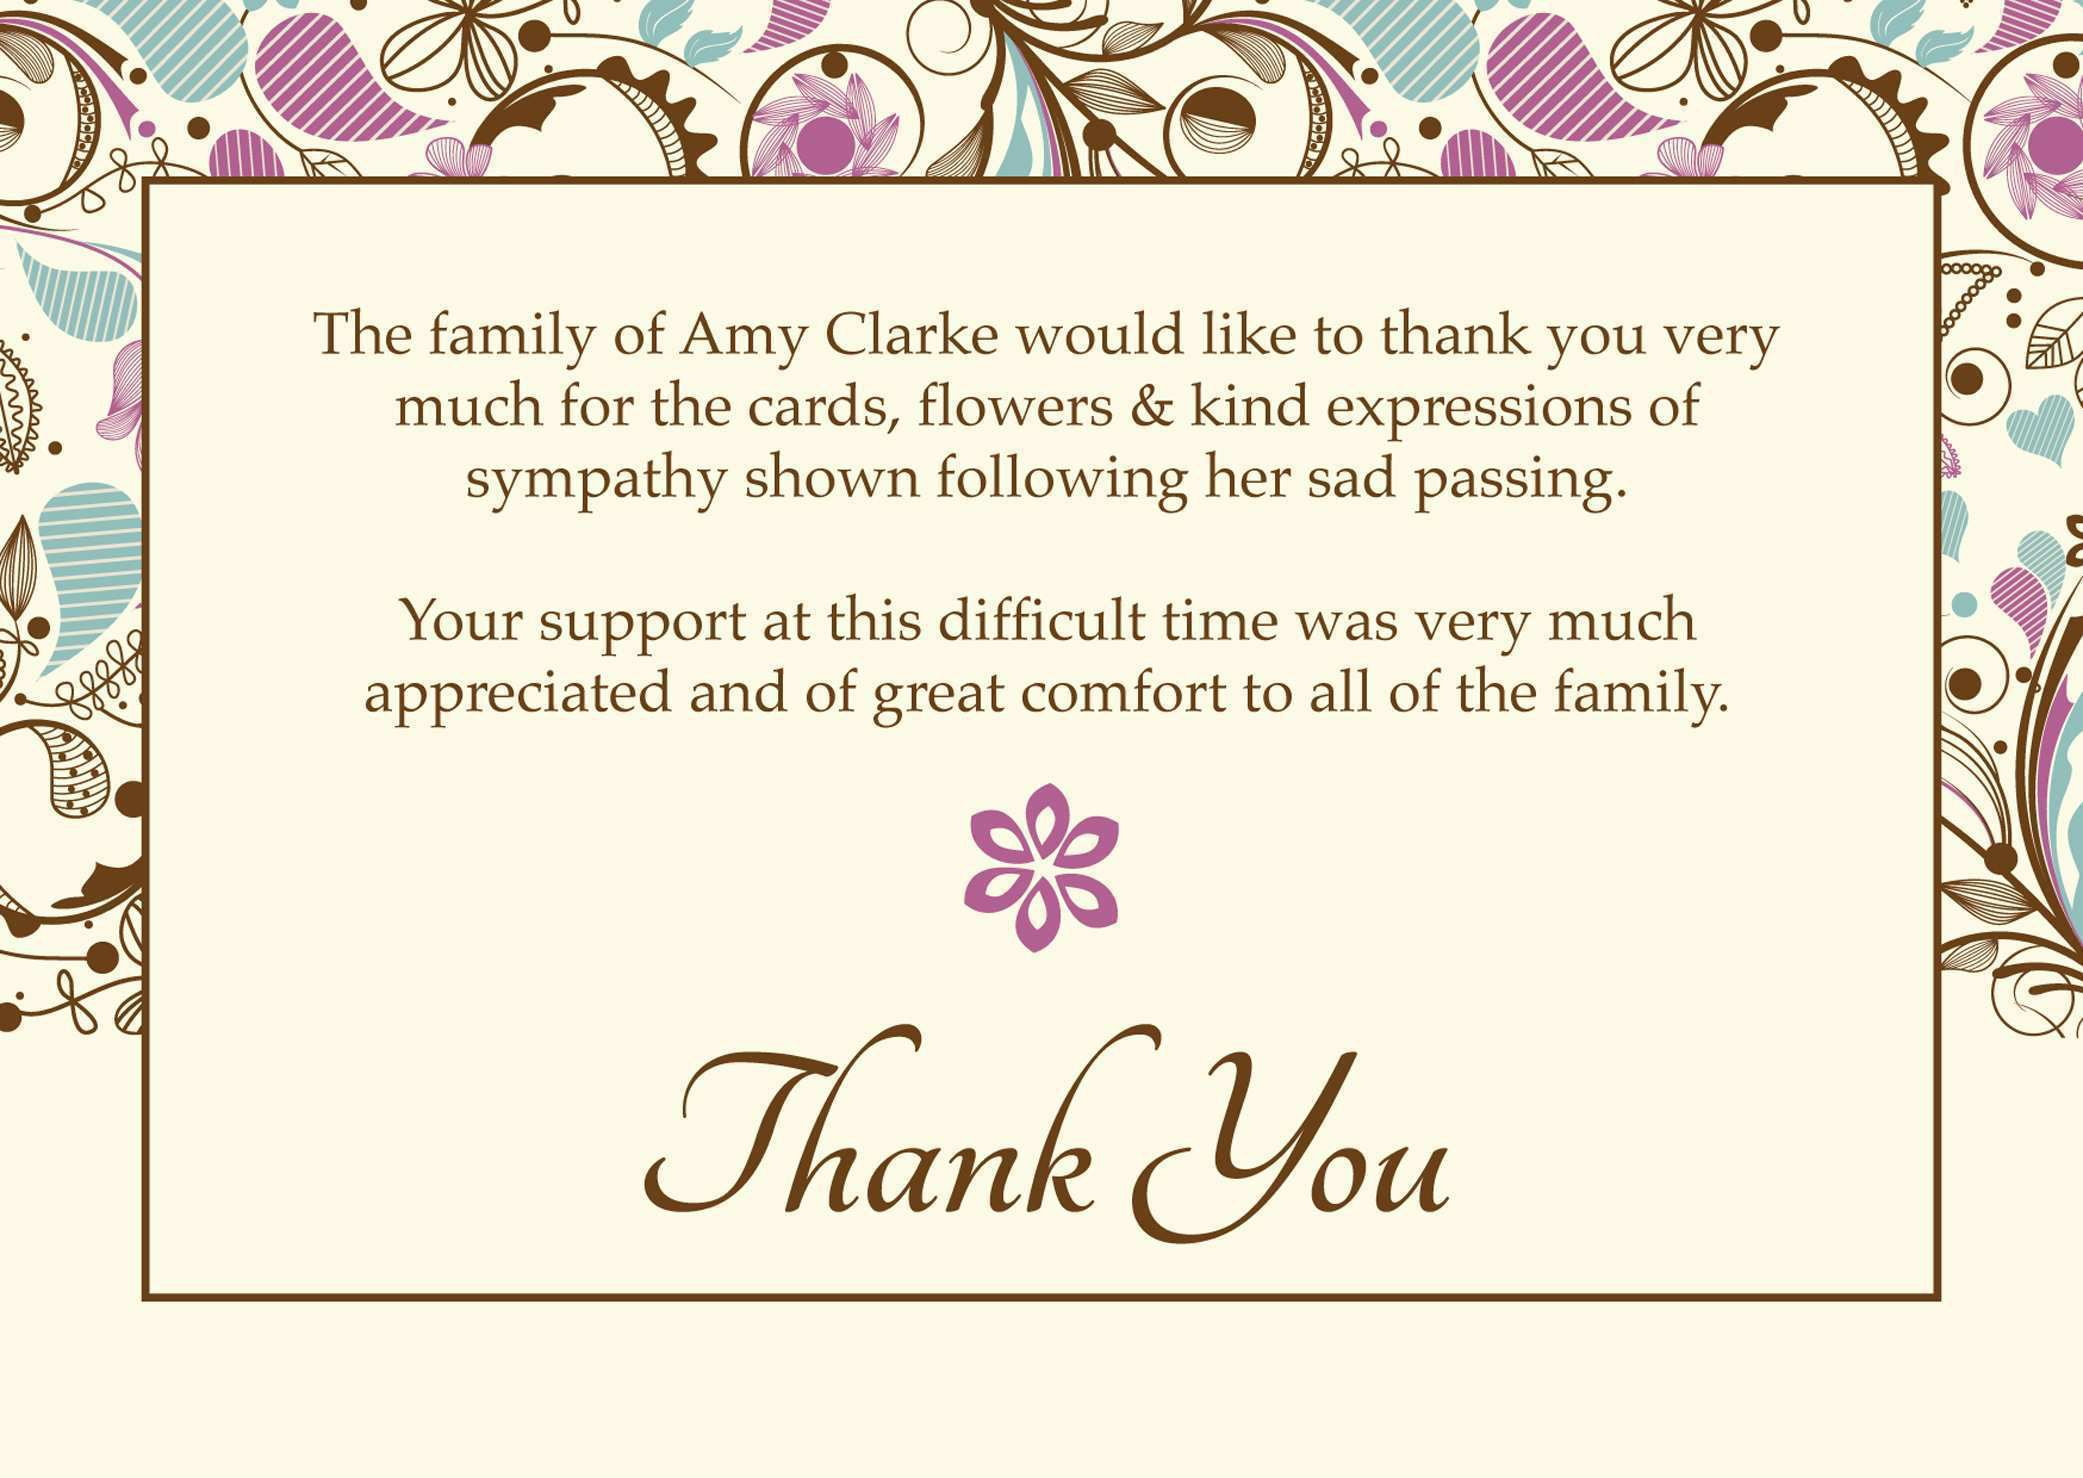 004 Fascinating Thank You Note Template Microsoft Word Picture  Card Free Funeral LetterFull